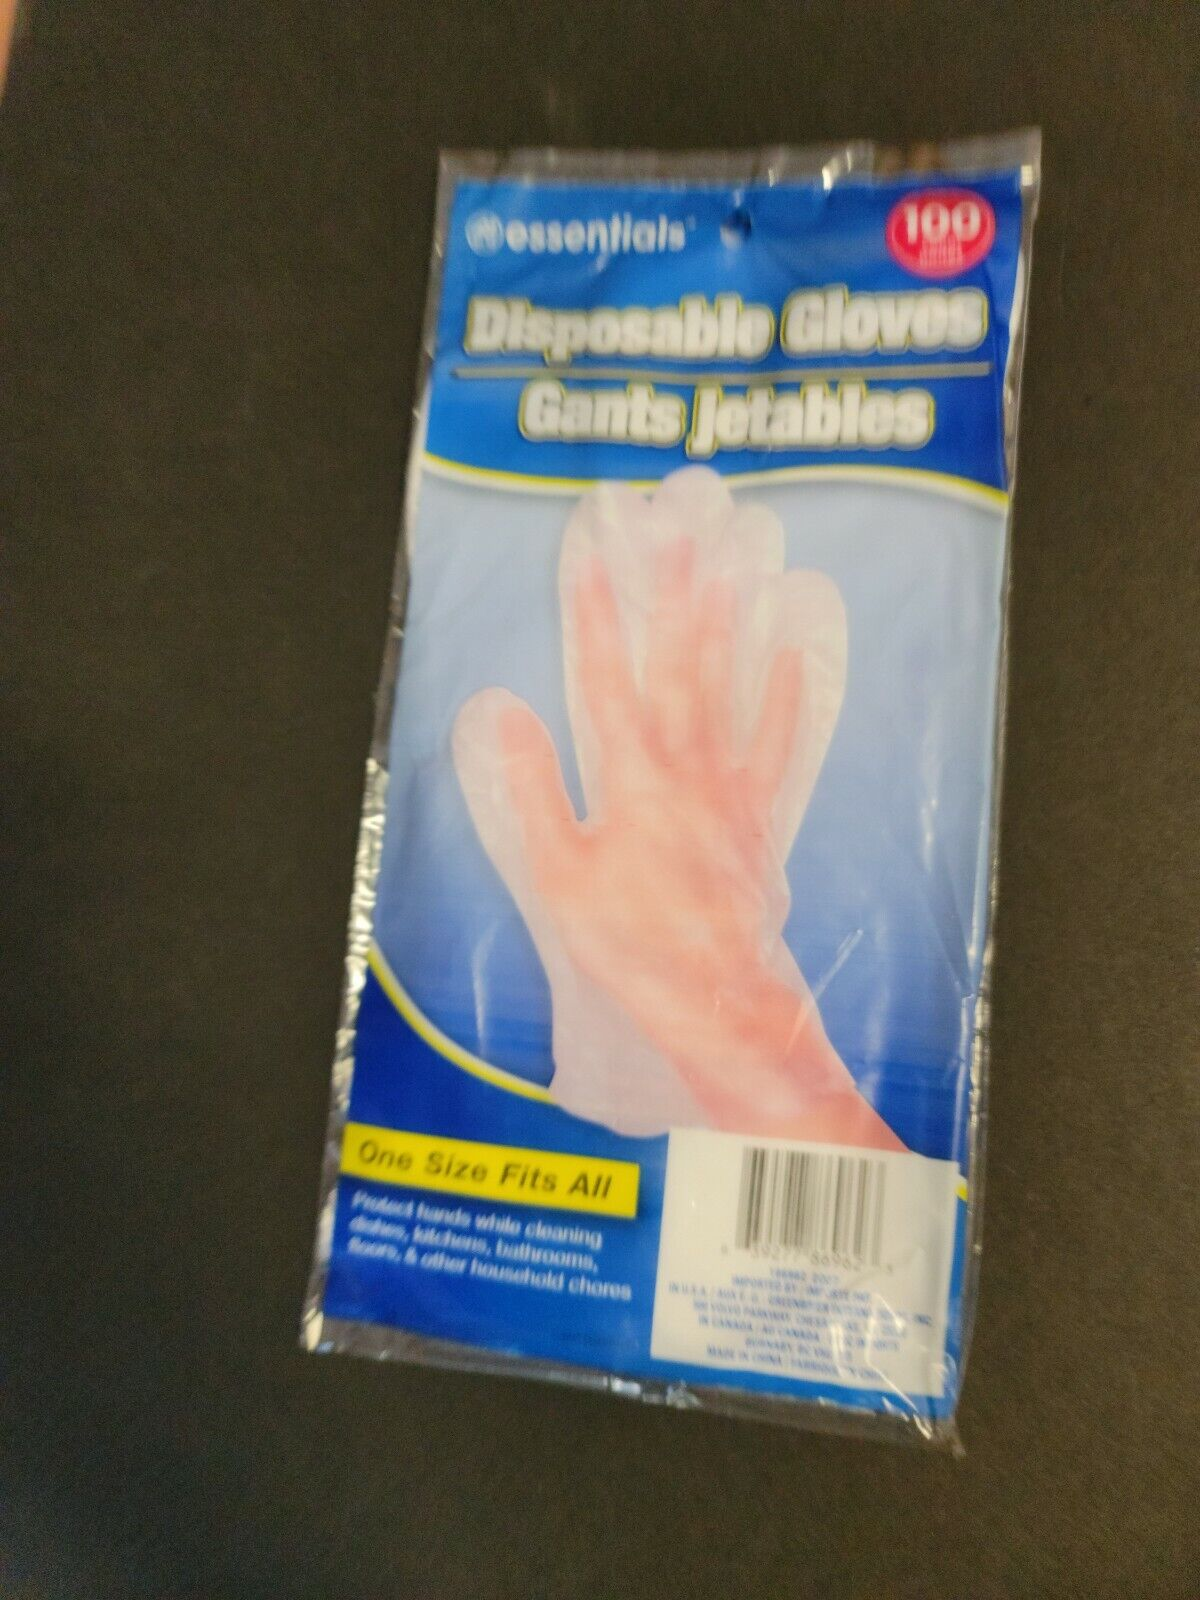 100 GLOVE WORKS Disposable Gloves Clear One Size - $6.90